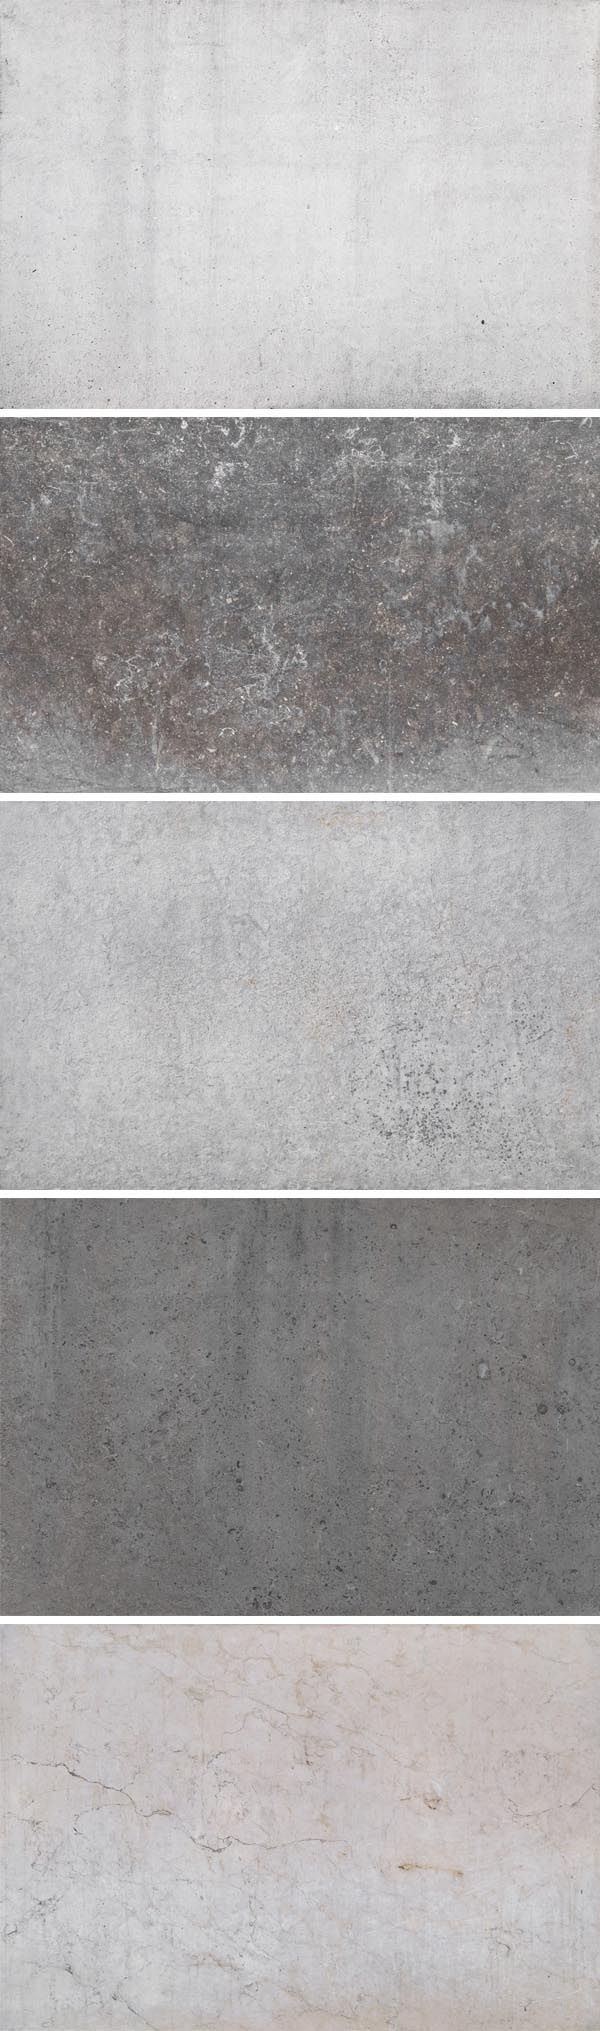 5 Free Stone Wall Texture Backgrounds